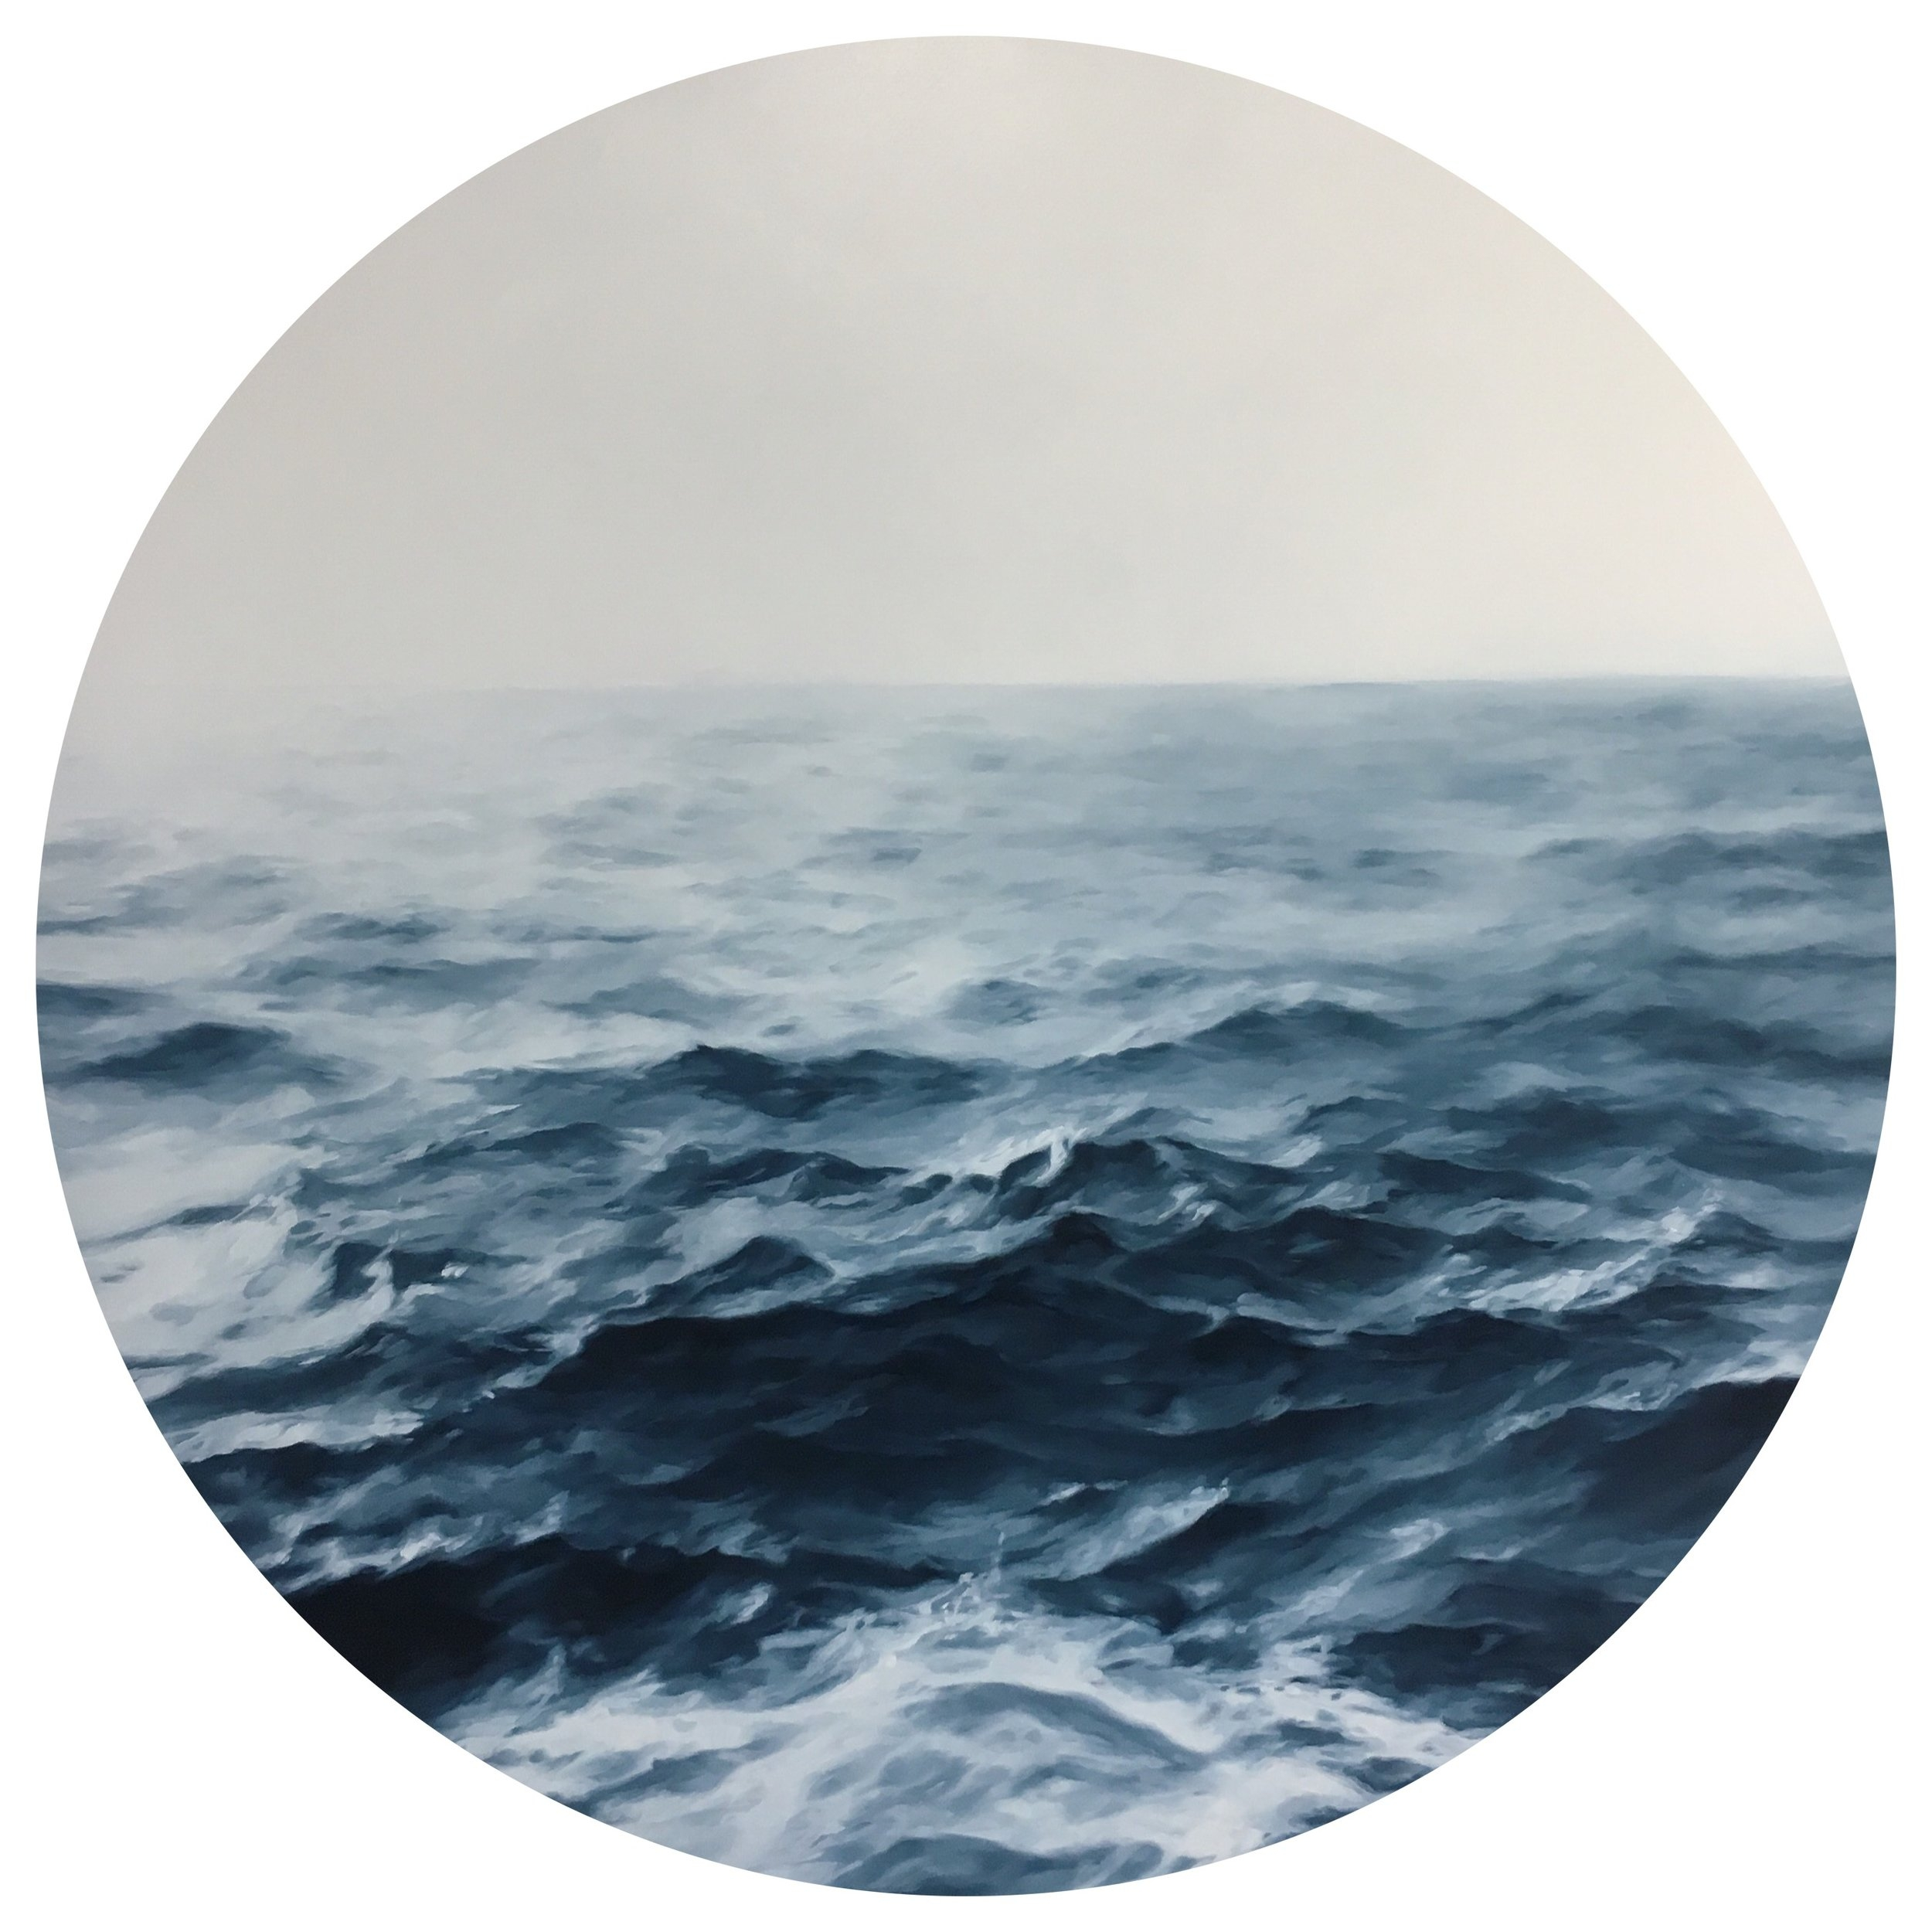 Marine Edith Crosta - London based French painter Marine Edith Crosta is best known for her miniature tondi depicting stormy seascapes. More than just another nautical themed painting, her Lost at Sea series addresses the notions of intimacy and introspection, enhanced by the small format and the locket like frame. A feeling also conveyed through her Wanderer paintings, gazing at the ocean, and more recently through her portraits, where the subject depicted from behind looks away from the viewer, creating a level of mystery and privacy unexpected in portraiture.